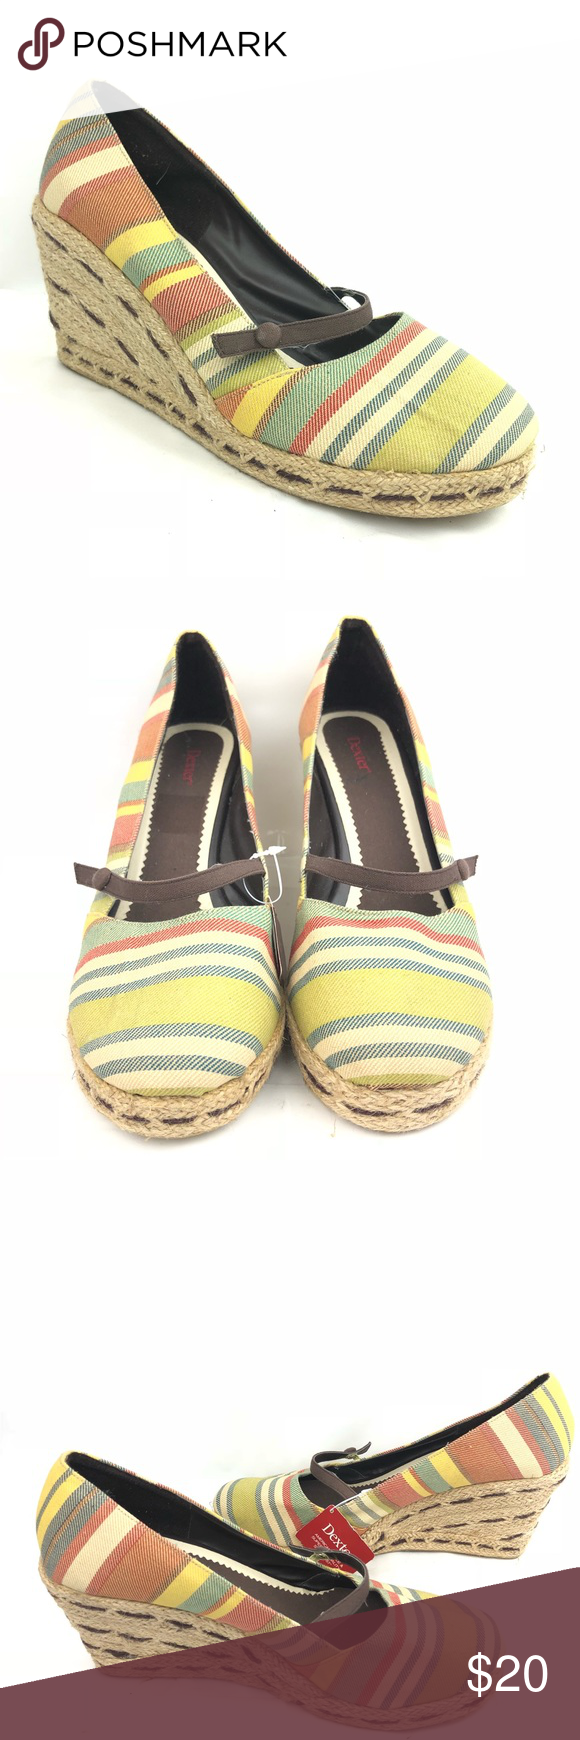 bb7073fb20c2 Dexter Wedge Heel espadrilles NEW Size 10 Dexter Wedge Heel espadrilles NEW  Size 10 Dexter Shoes Wedges